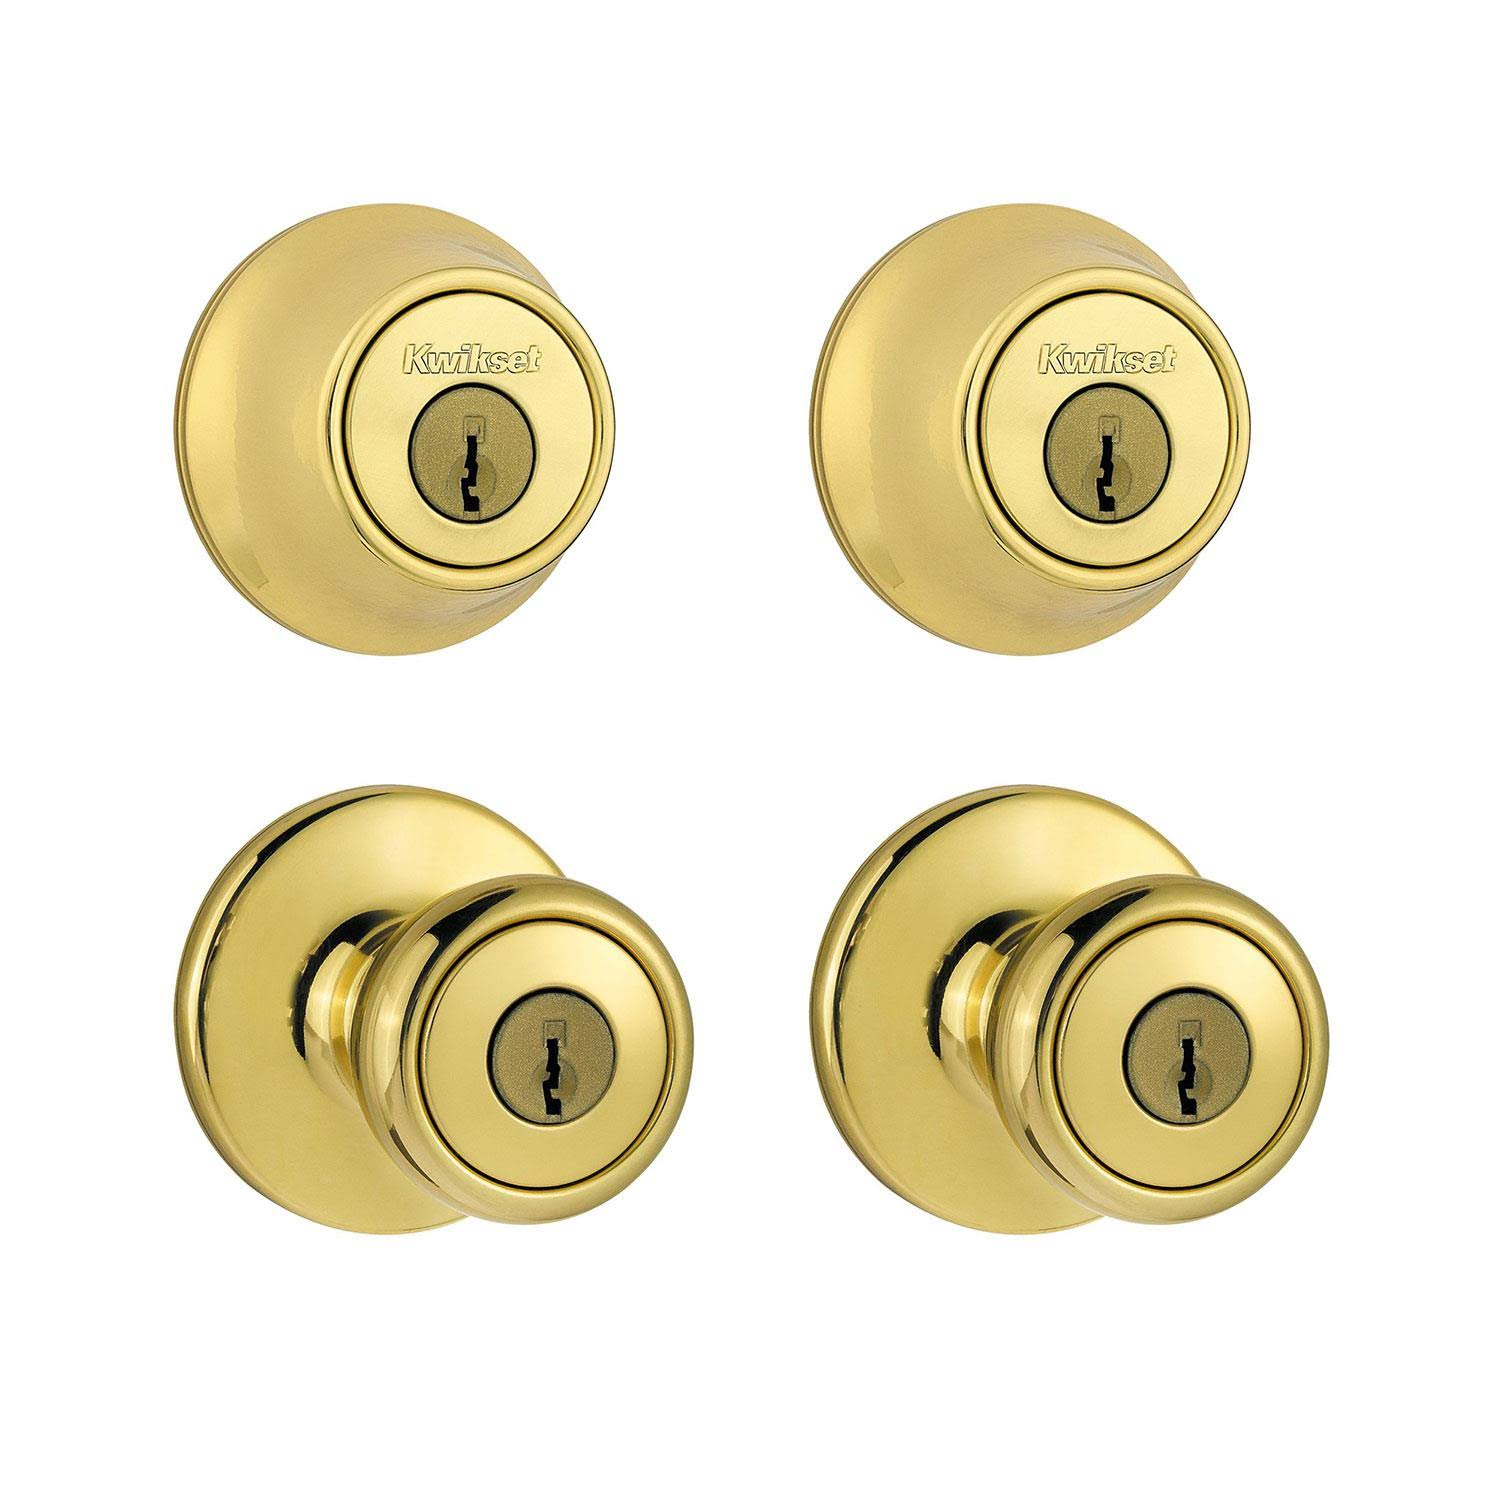 Kwikset Entry Locksets Tylo Knob, Polished Brass - 2 pack